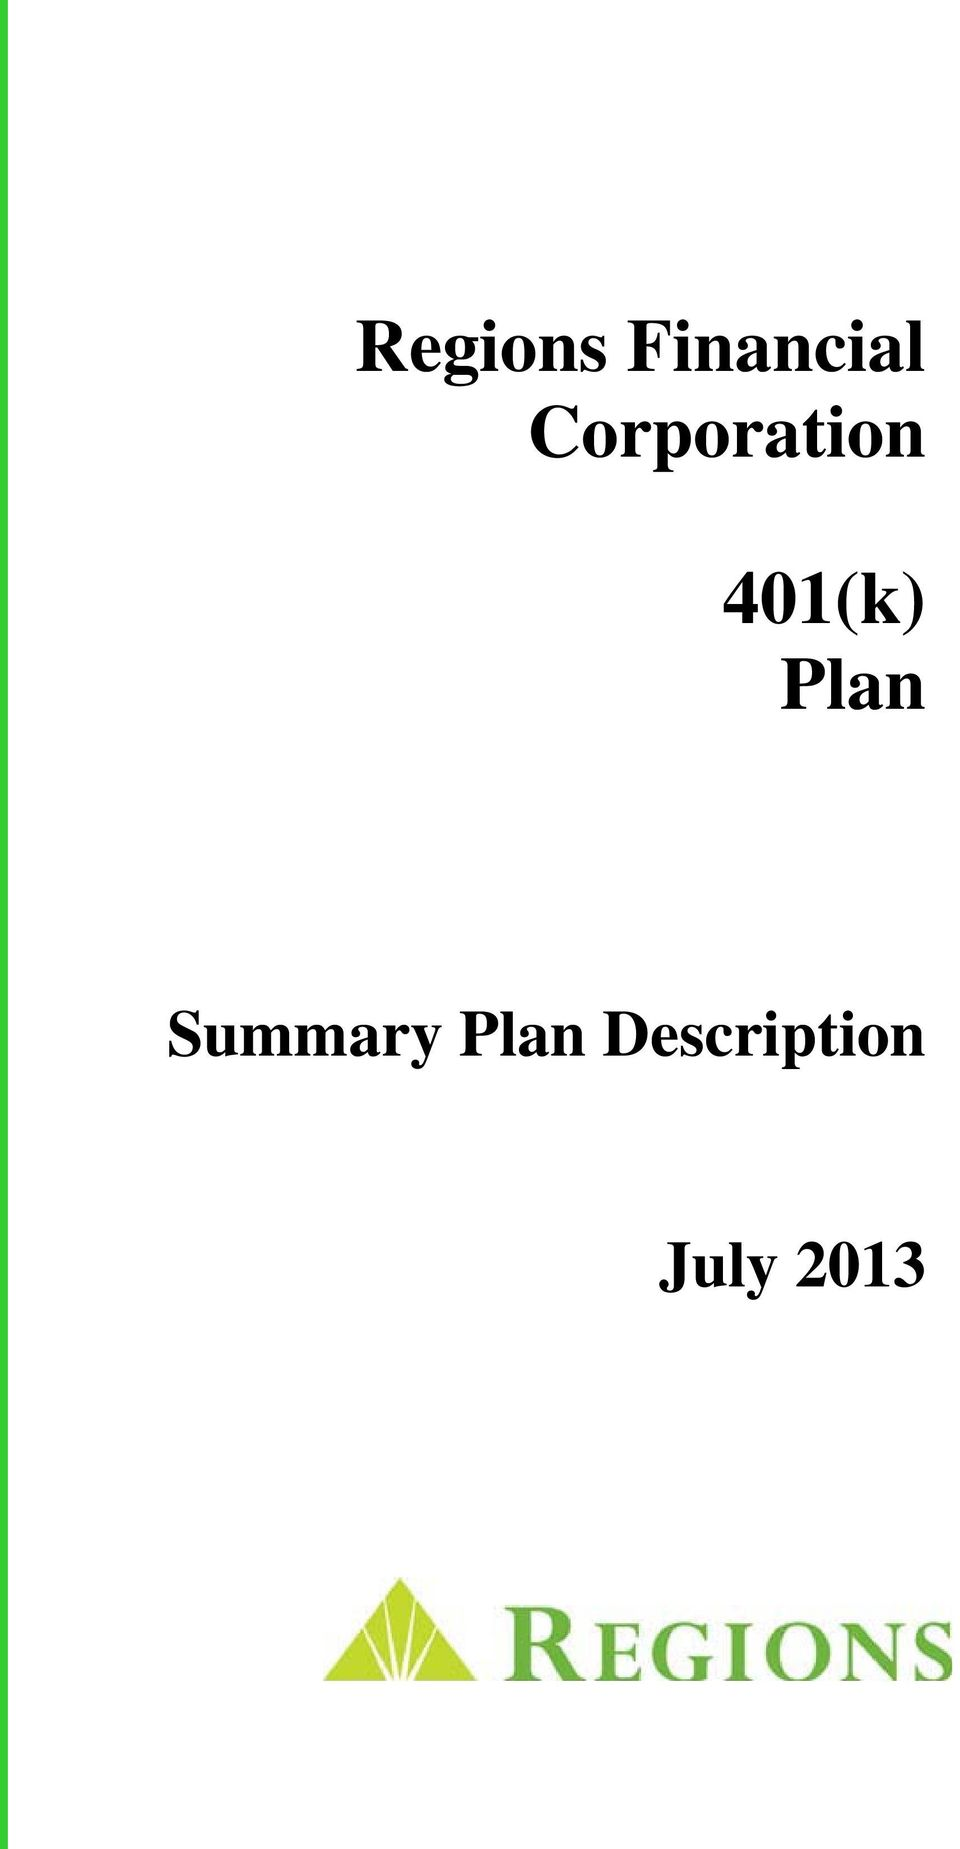 Plan Summary Plan